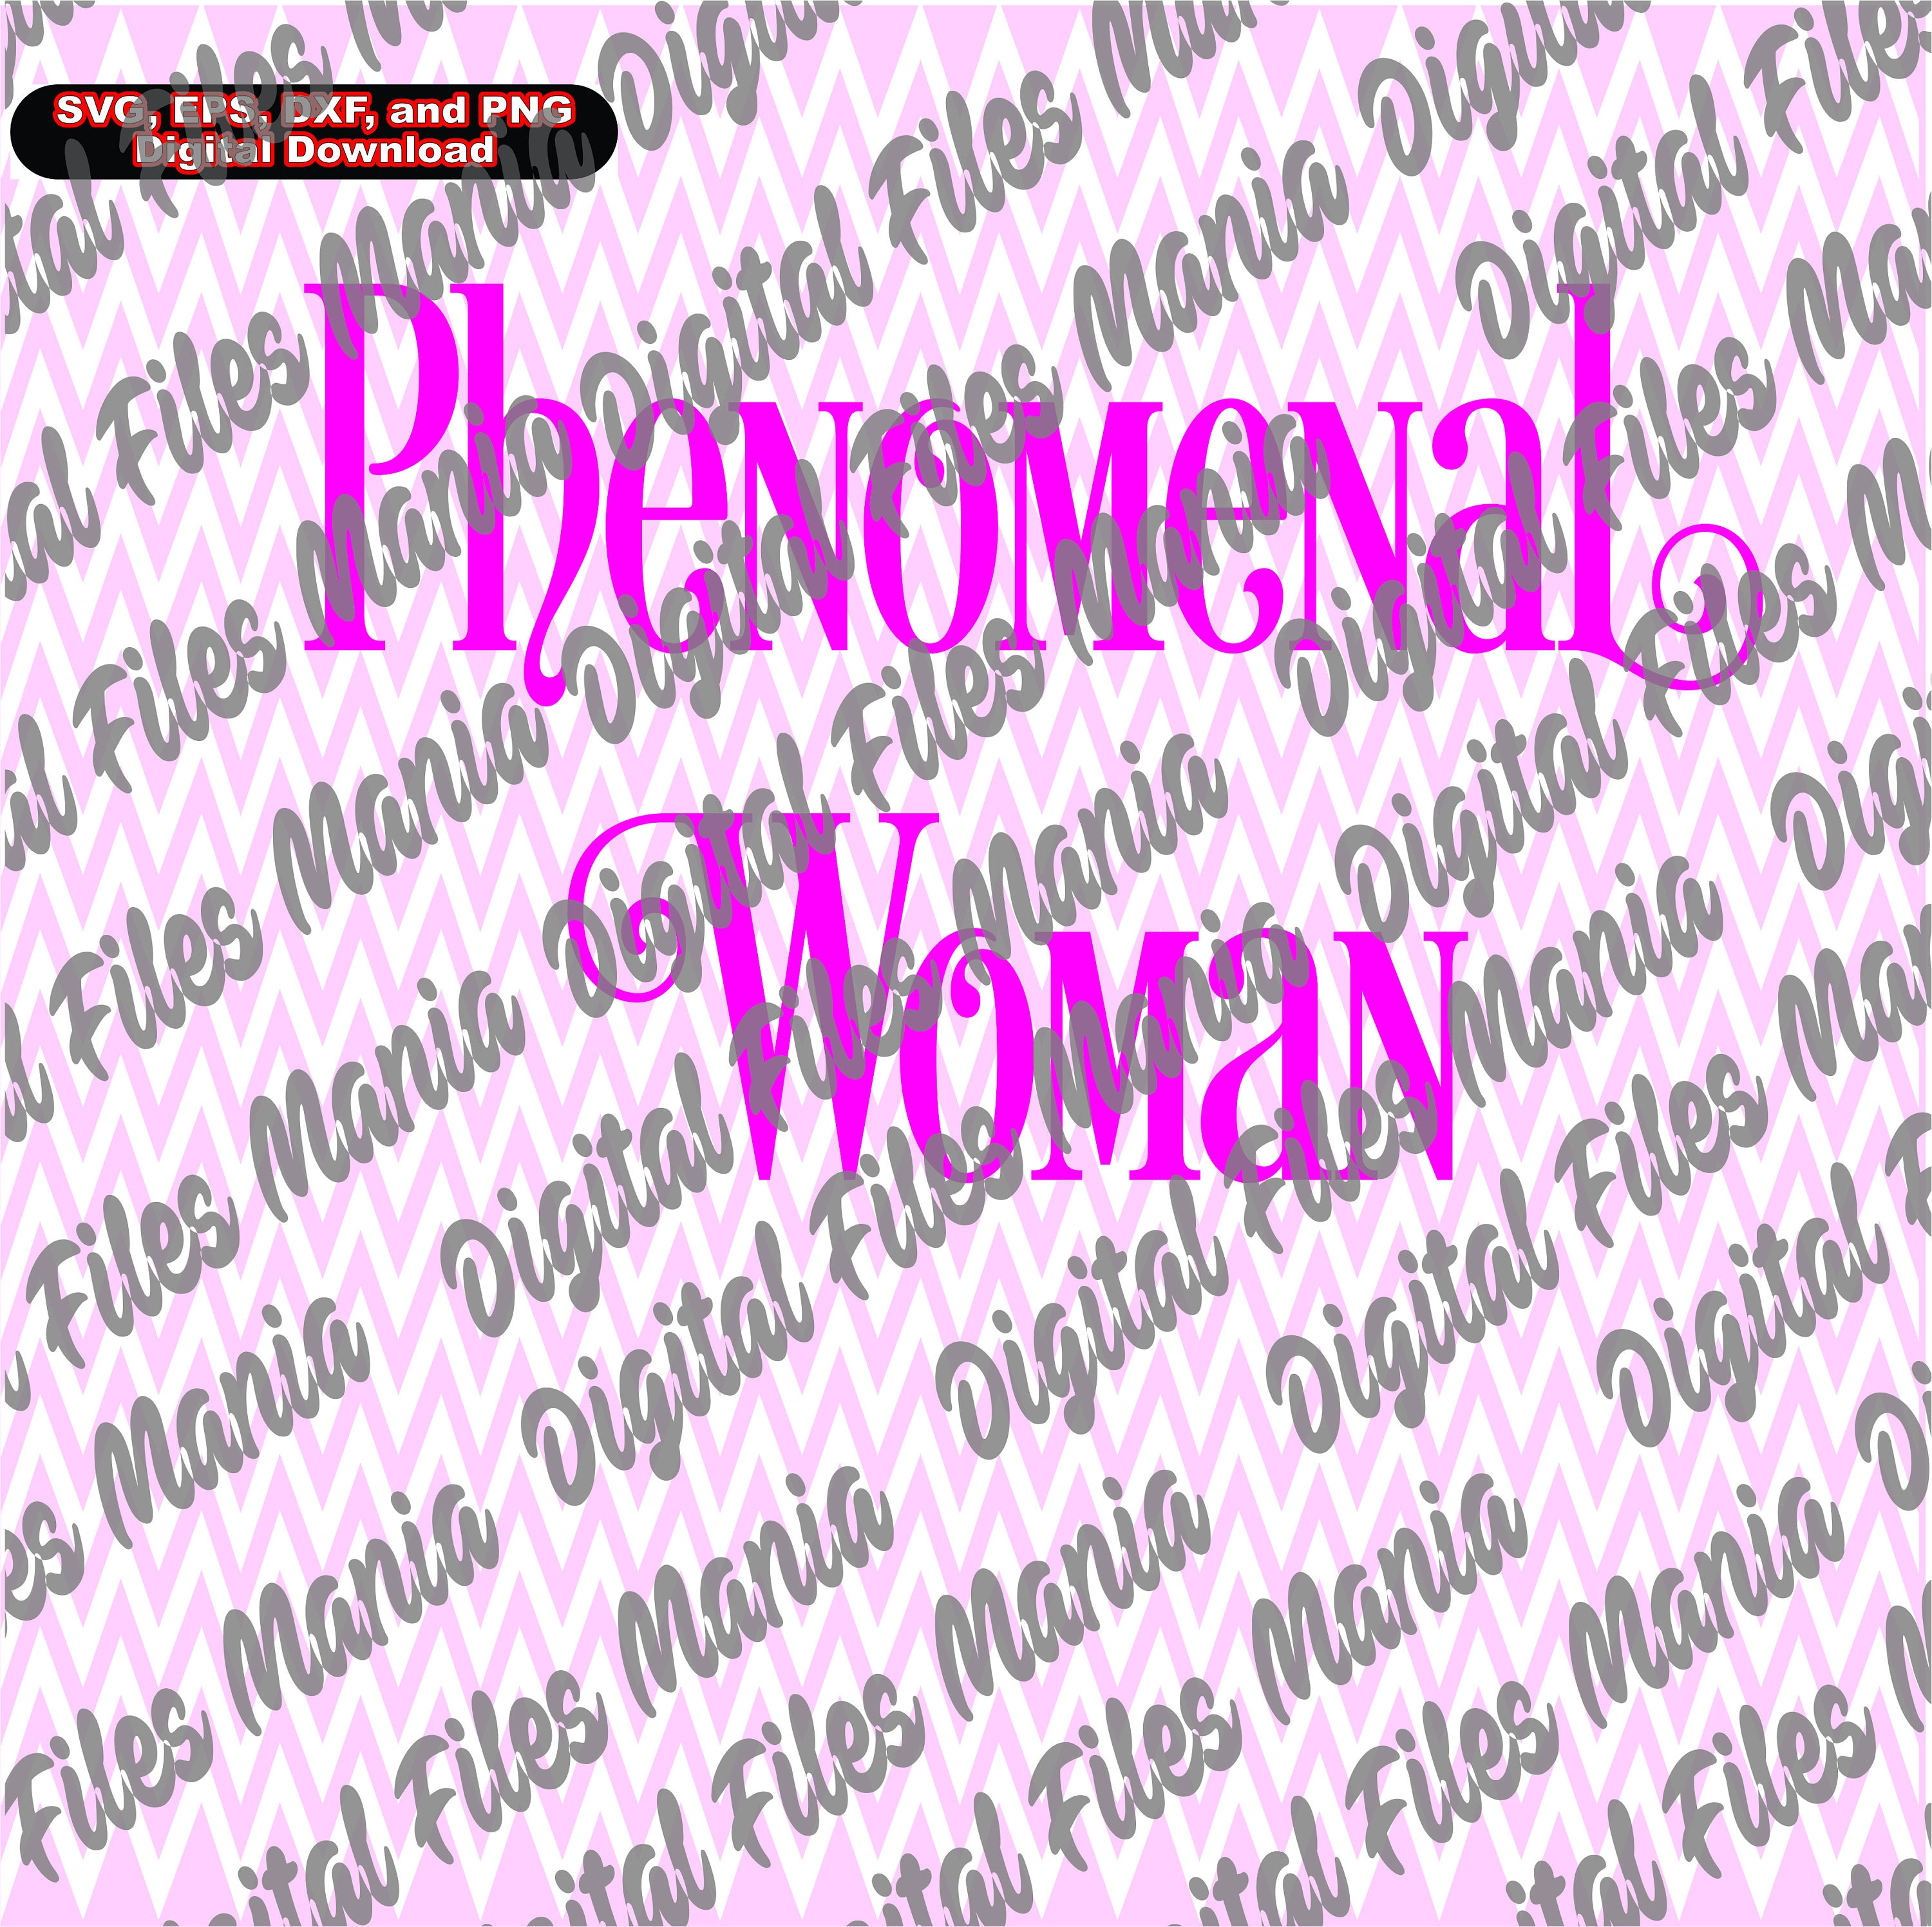 Phenomenal Woman Quotes Phenomenal Woman Svg Eps Dxfand Jpg African Svg Quotes Svg